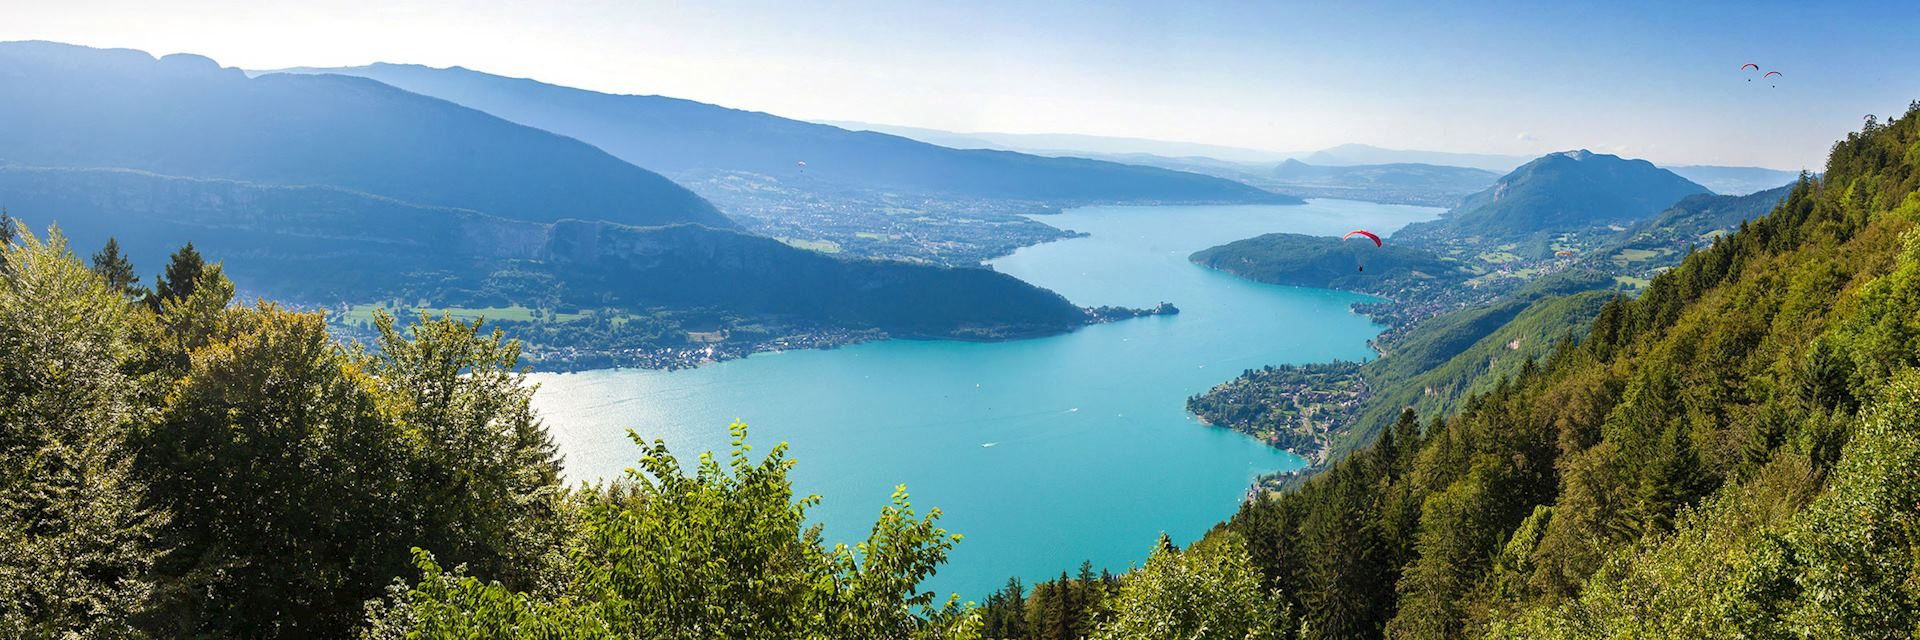 View of Annecy lake from Col du Forclaz